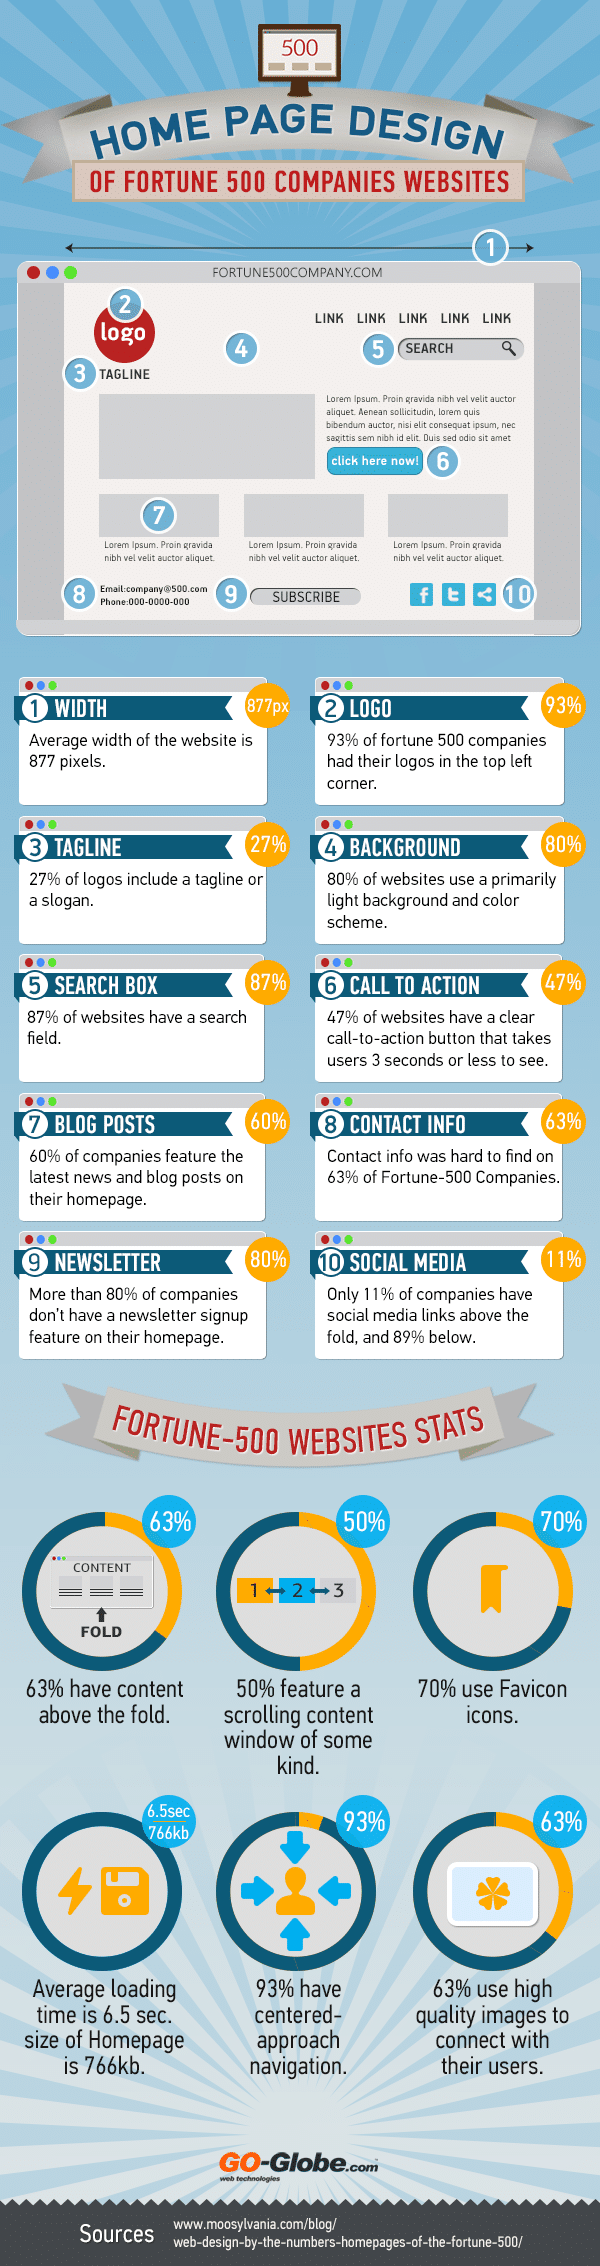 Web Design Trends Of Fortune 500 Companies [Infographic]